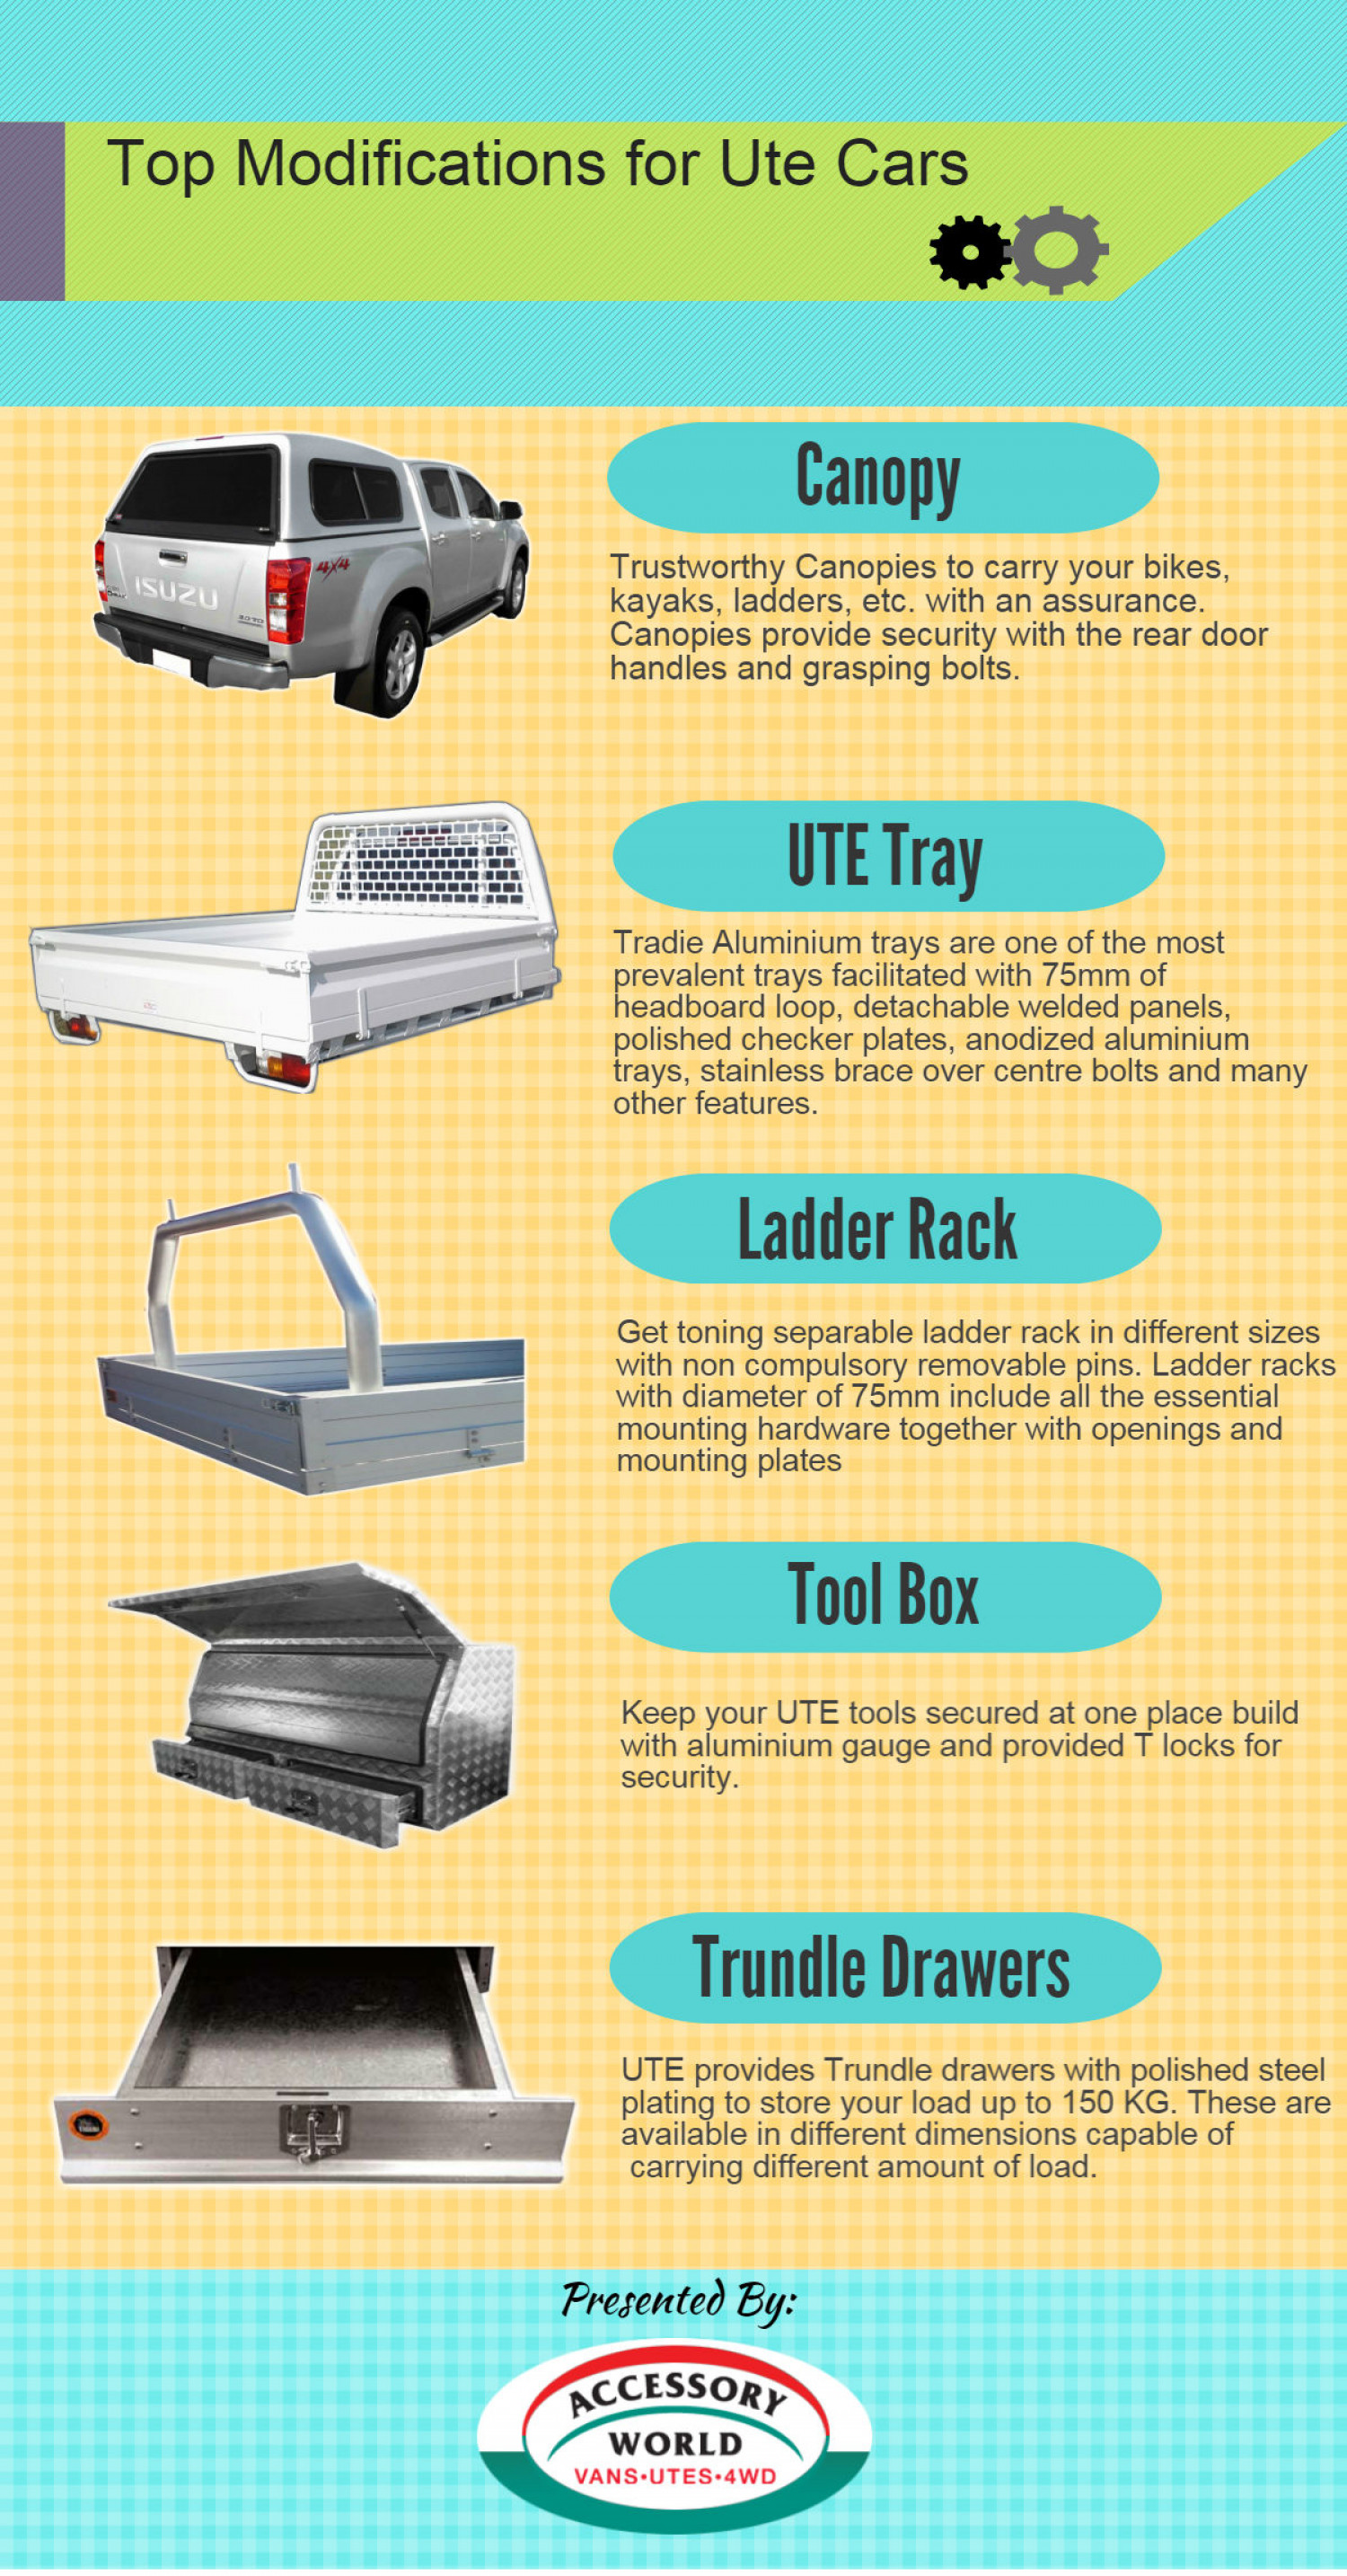 Top Modifications for Ute Cars Infographic